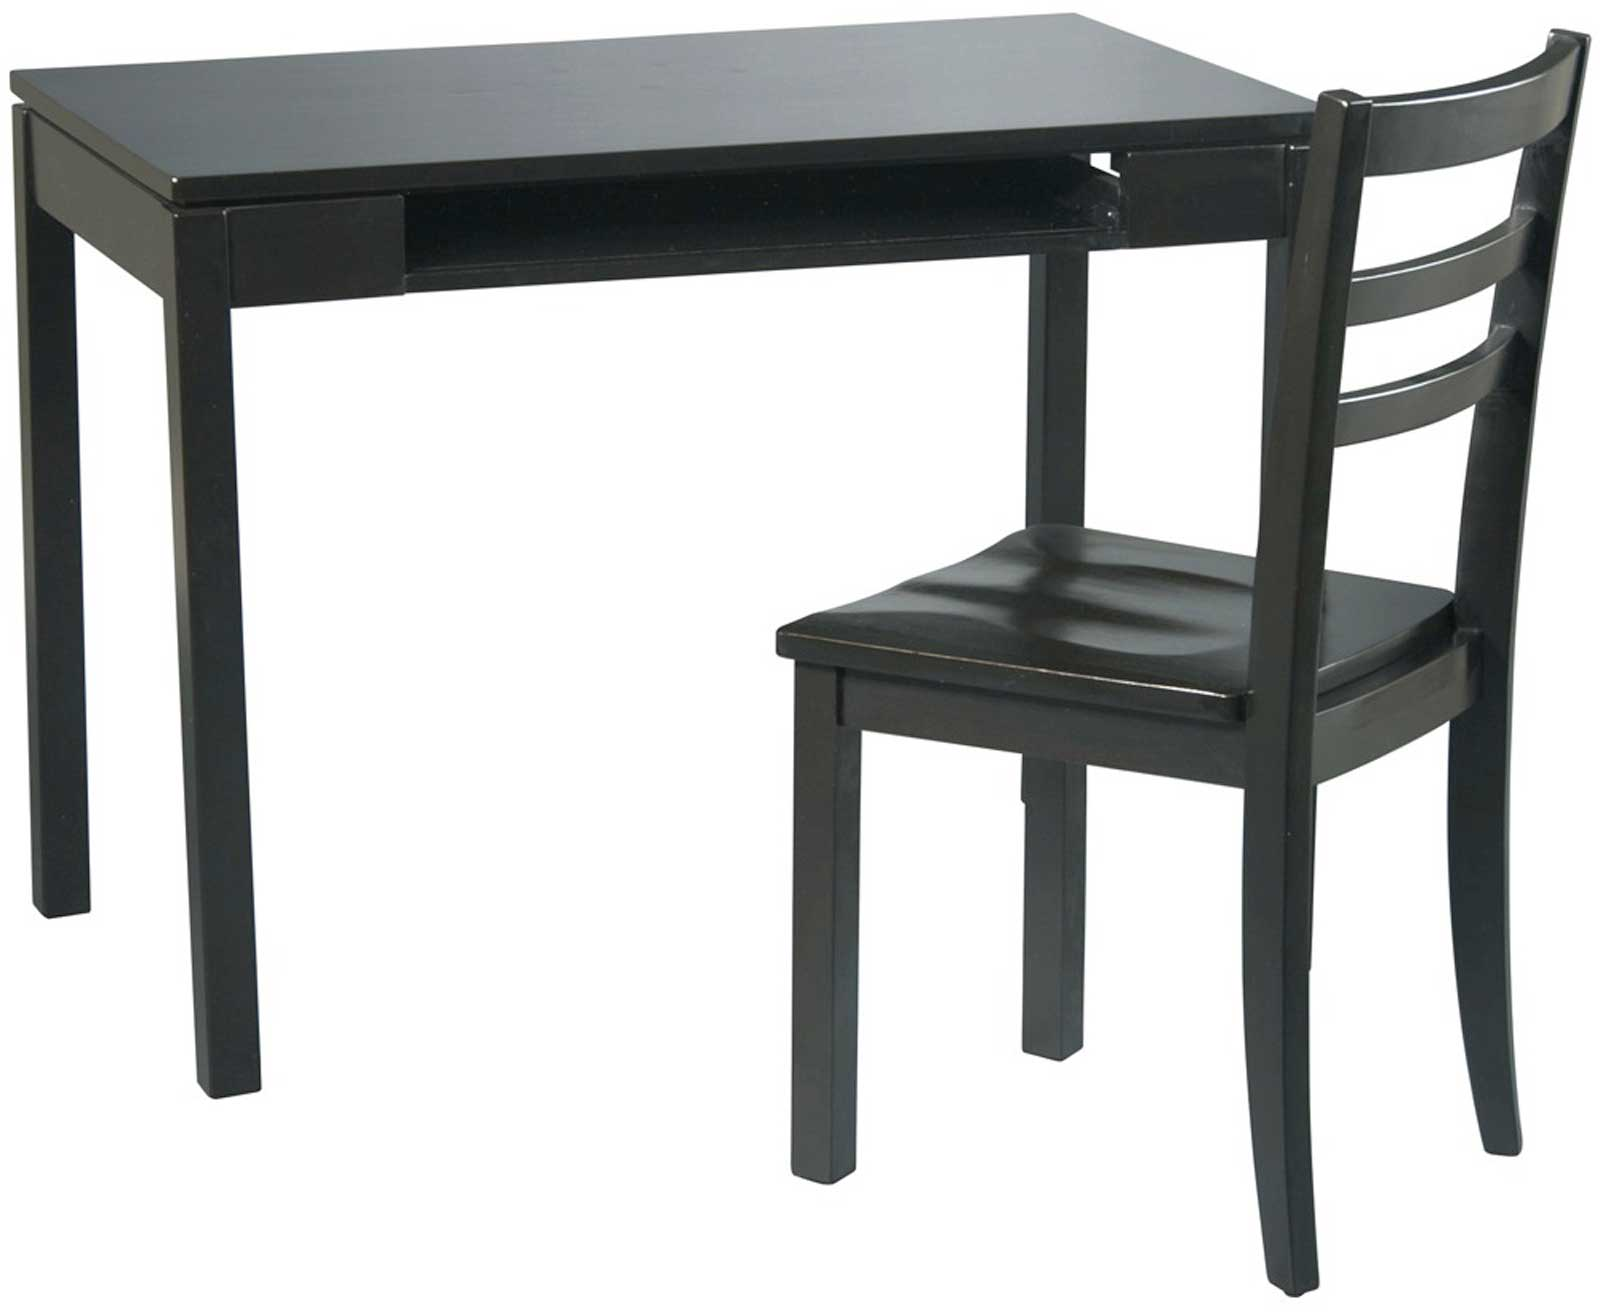 Black Office Desks for Home and Office | Office Furniture